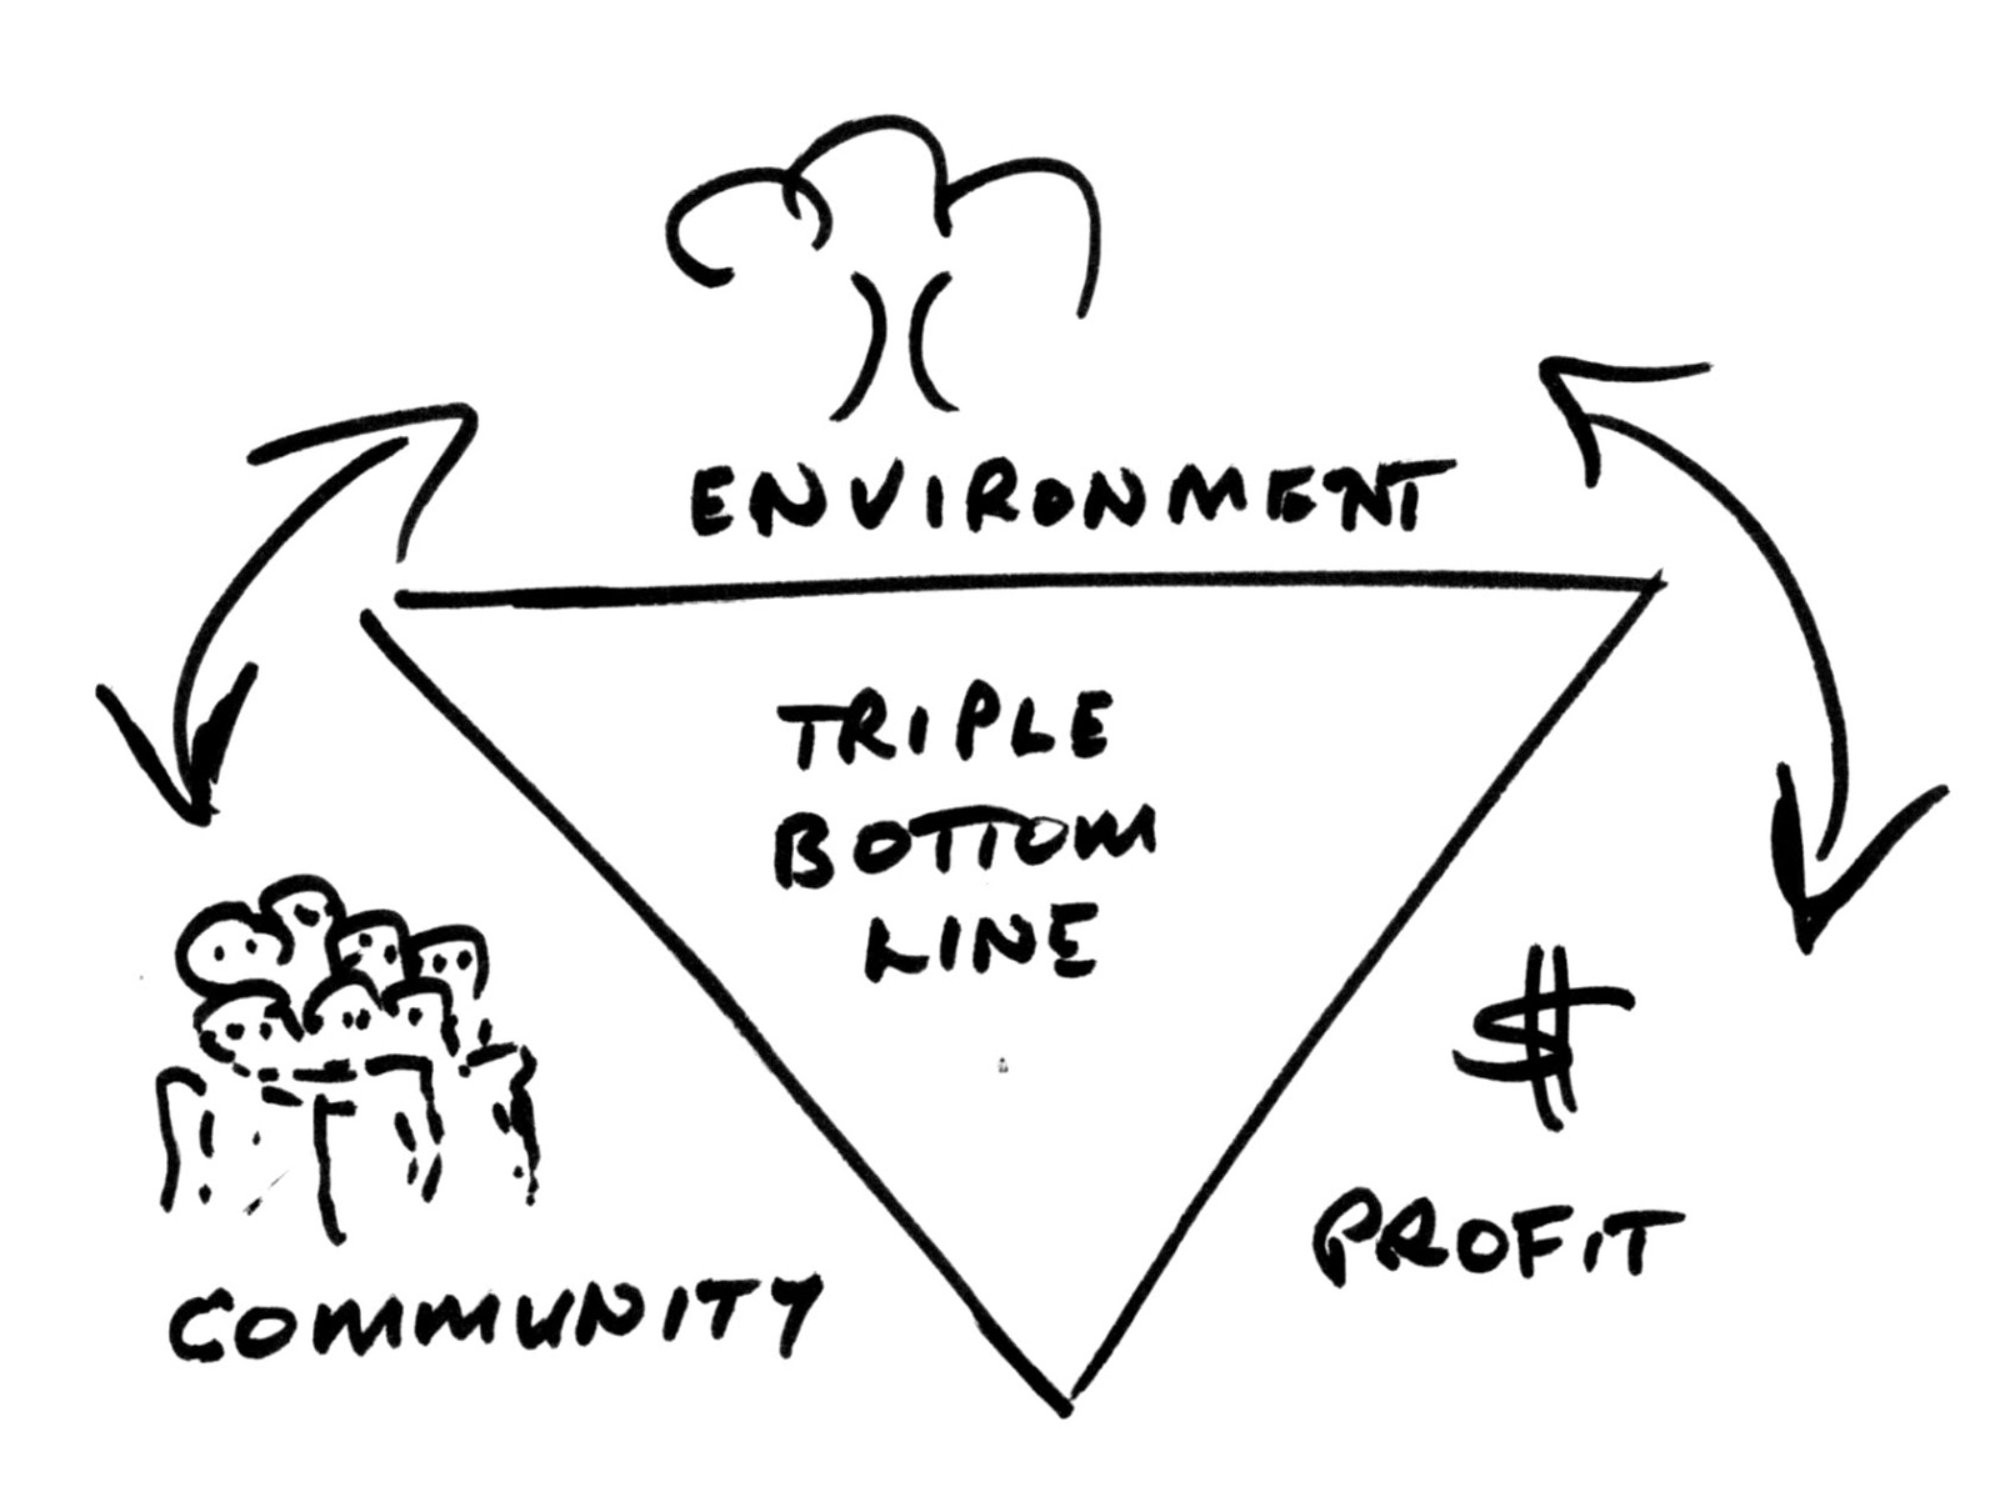 People, Planet & Profit — Triple Bottom line — The Ethical